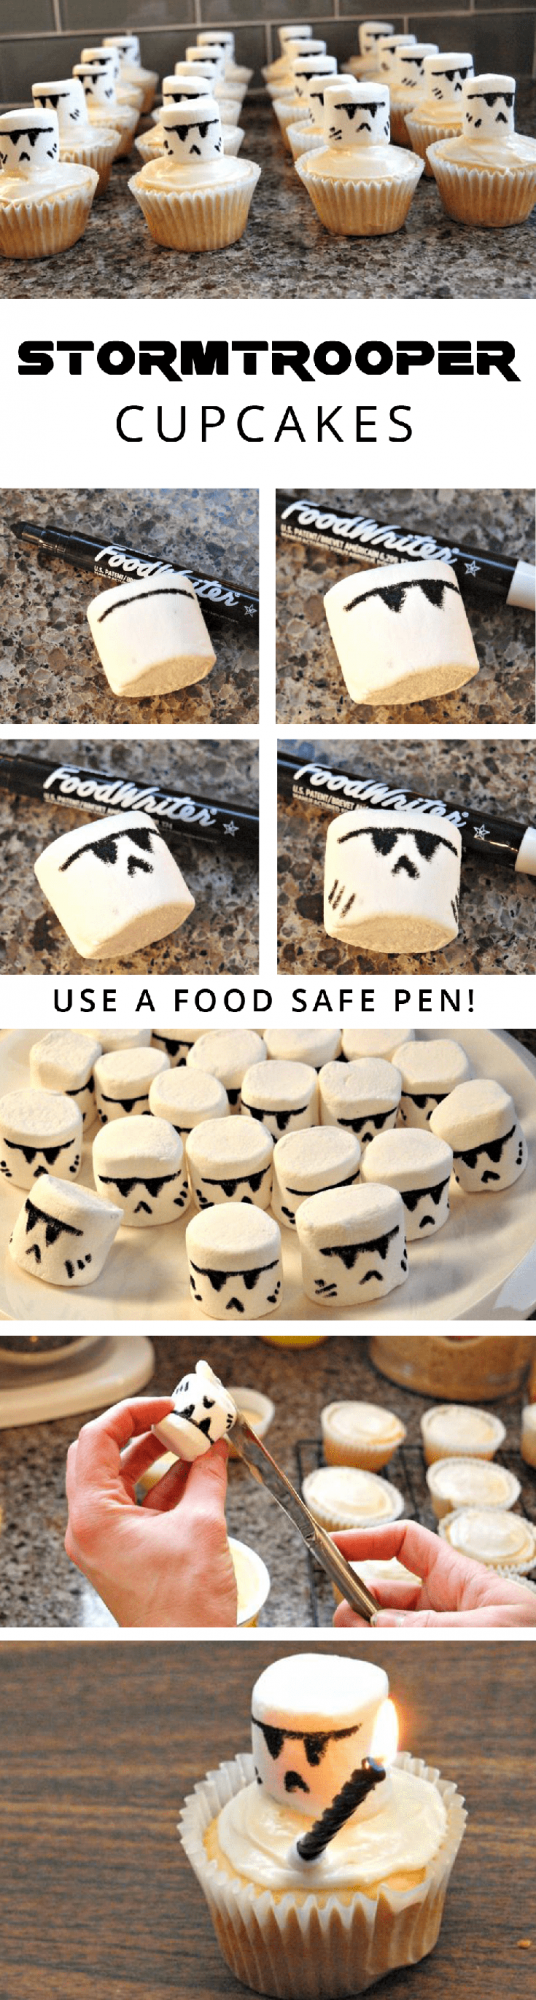 A black food pen makes it simple and easy to create these special Clone and Stormtrooper Cupcakes for birthday parties and special occasions! | YMC